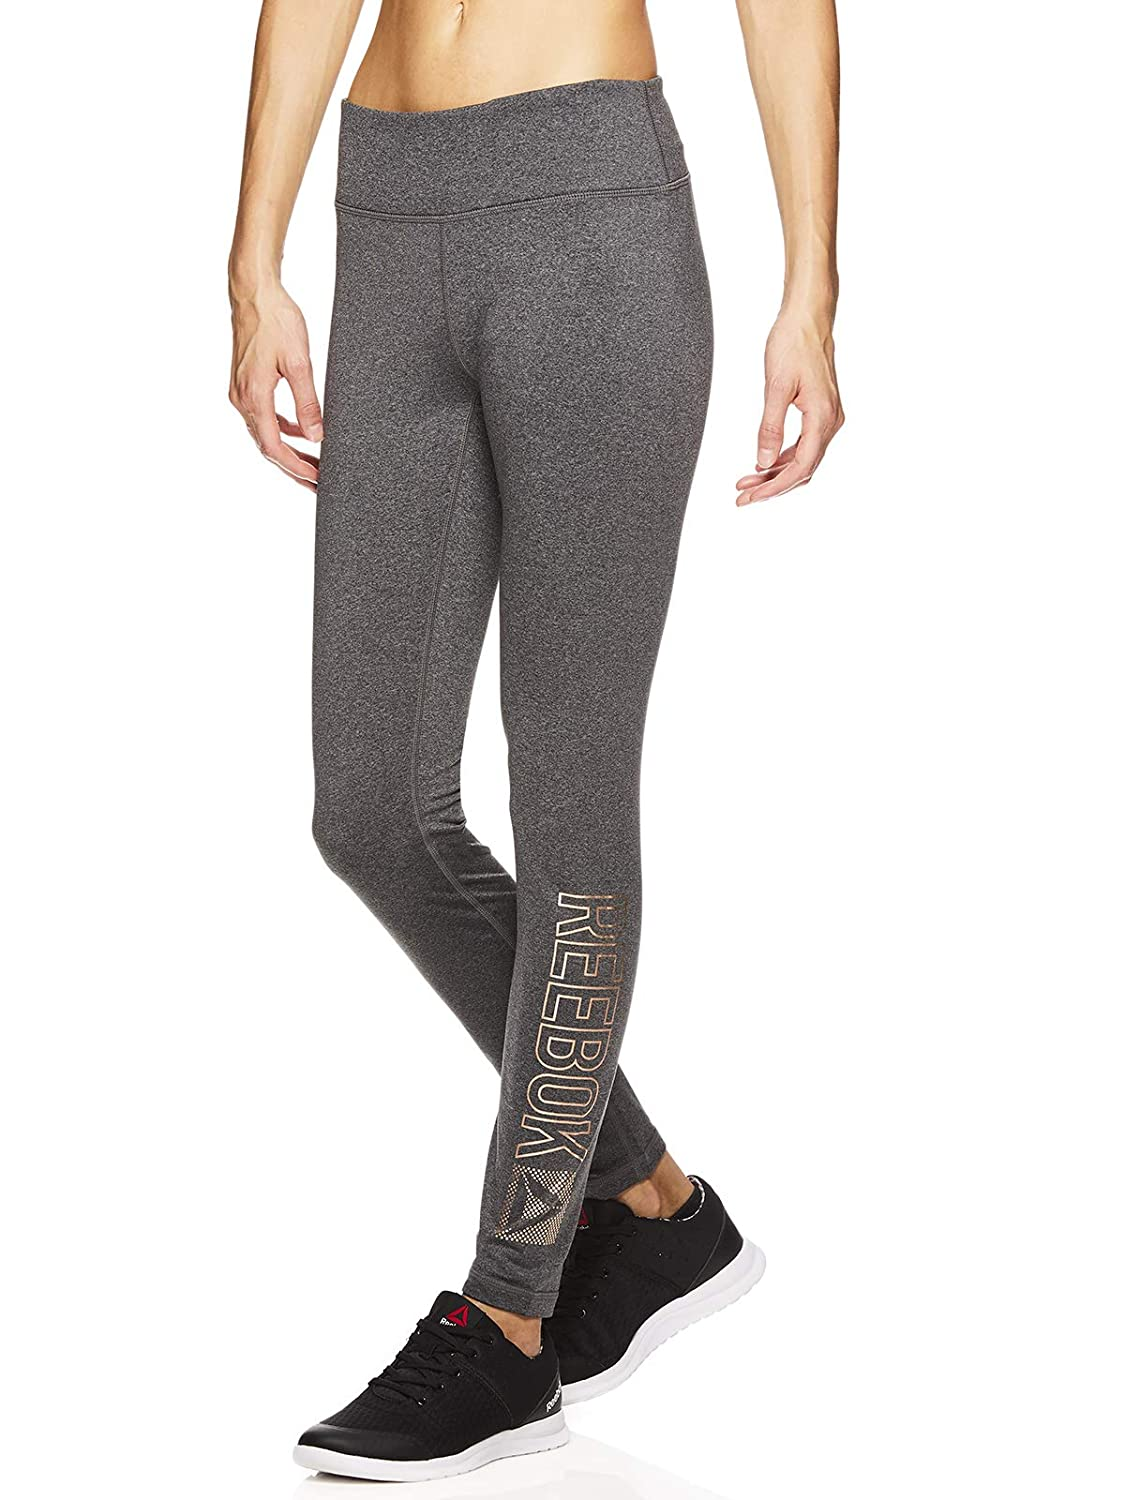 8cad3ec3b9bbae Amazon.com: Reebok Women's Fleece Lined Legging - Full Length Performance  Compression Workout Pants: Clothing